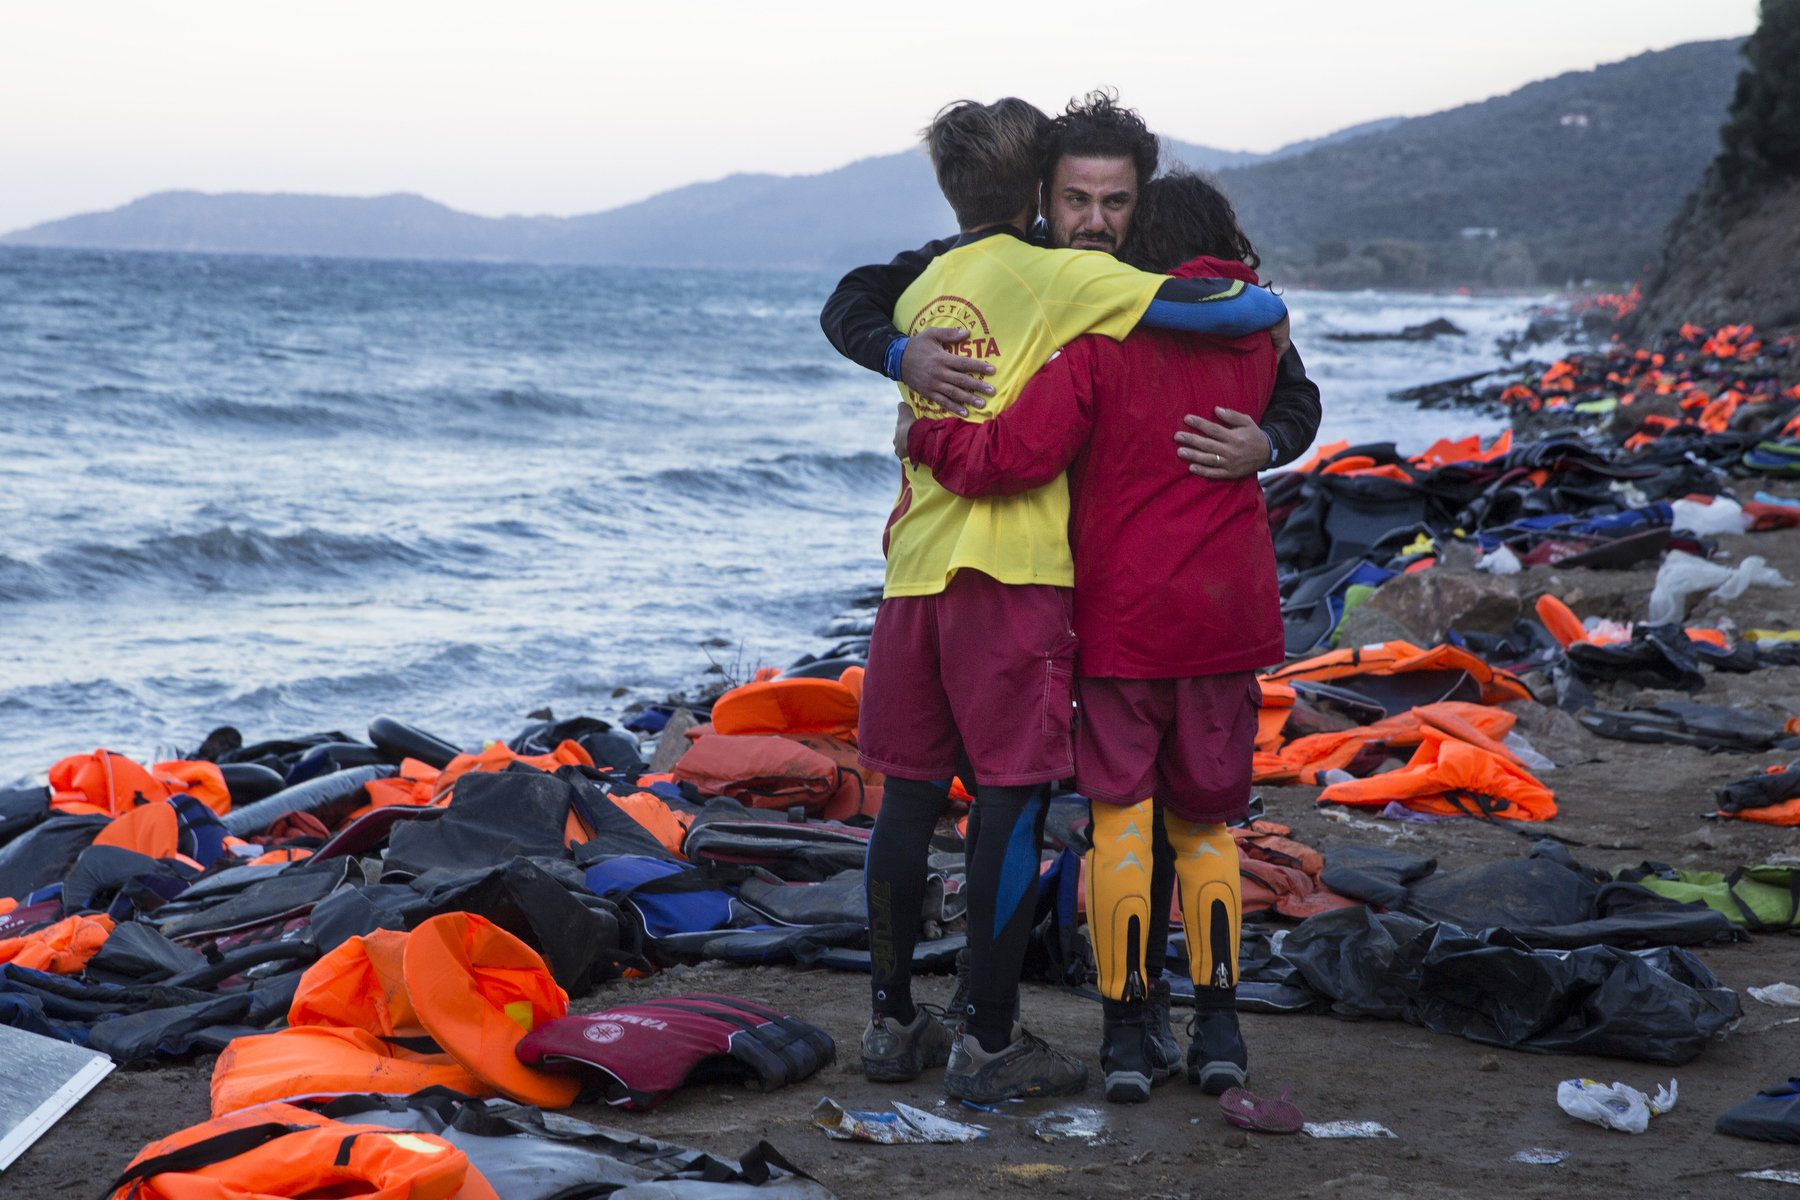 LESBOS, GREECE - OCTOBER 30: Israeli Doctor Essam Daod ( center) cries getting comforted by Proactiva lifeguards from Spainon Lesbos, Greece on October 30, 2015. The emergency team made a huge effort trying to save the refugee who later died after being rescued from the open waters of the Aegean sea. The man died despite the efforts of the lifeguards and medical personnel to revive him. Dozens of rafts and boats are still making the journey daily over 590,000 people have crossed into the gateway of Europe. Nearly all of those are from the war zones of Syria, Iraq and Afghanistan. (Photo by Paula Bronstein)